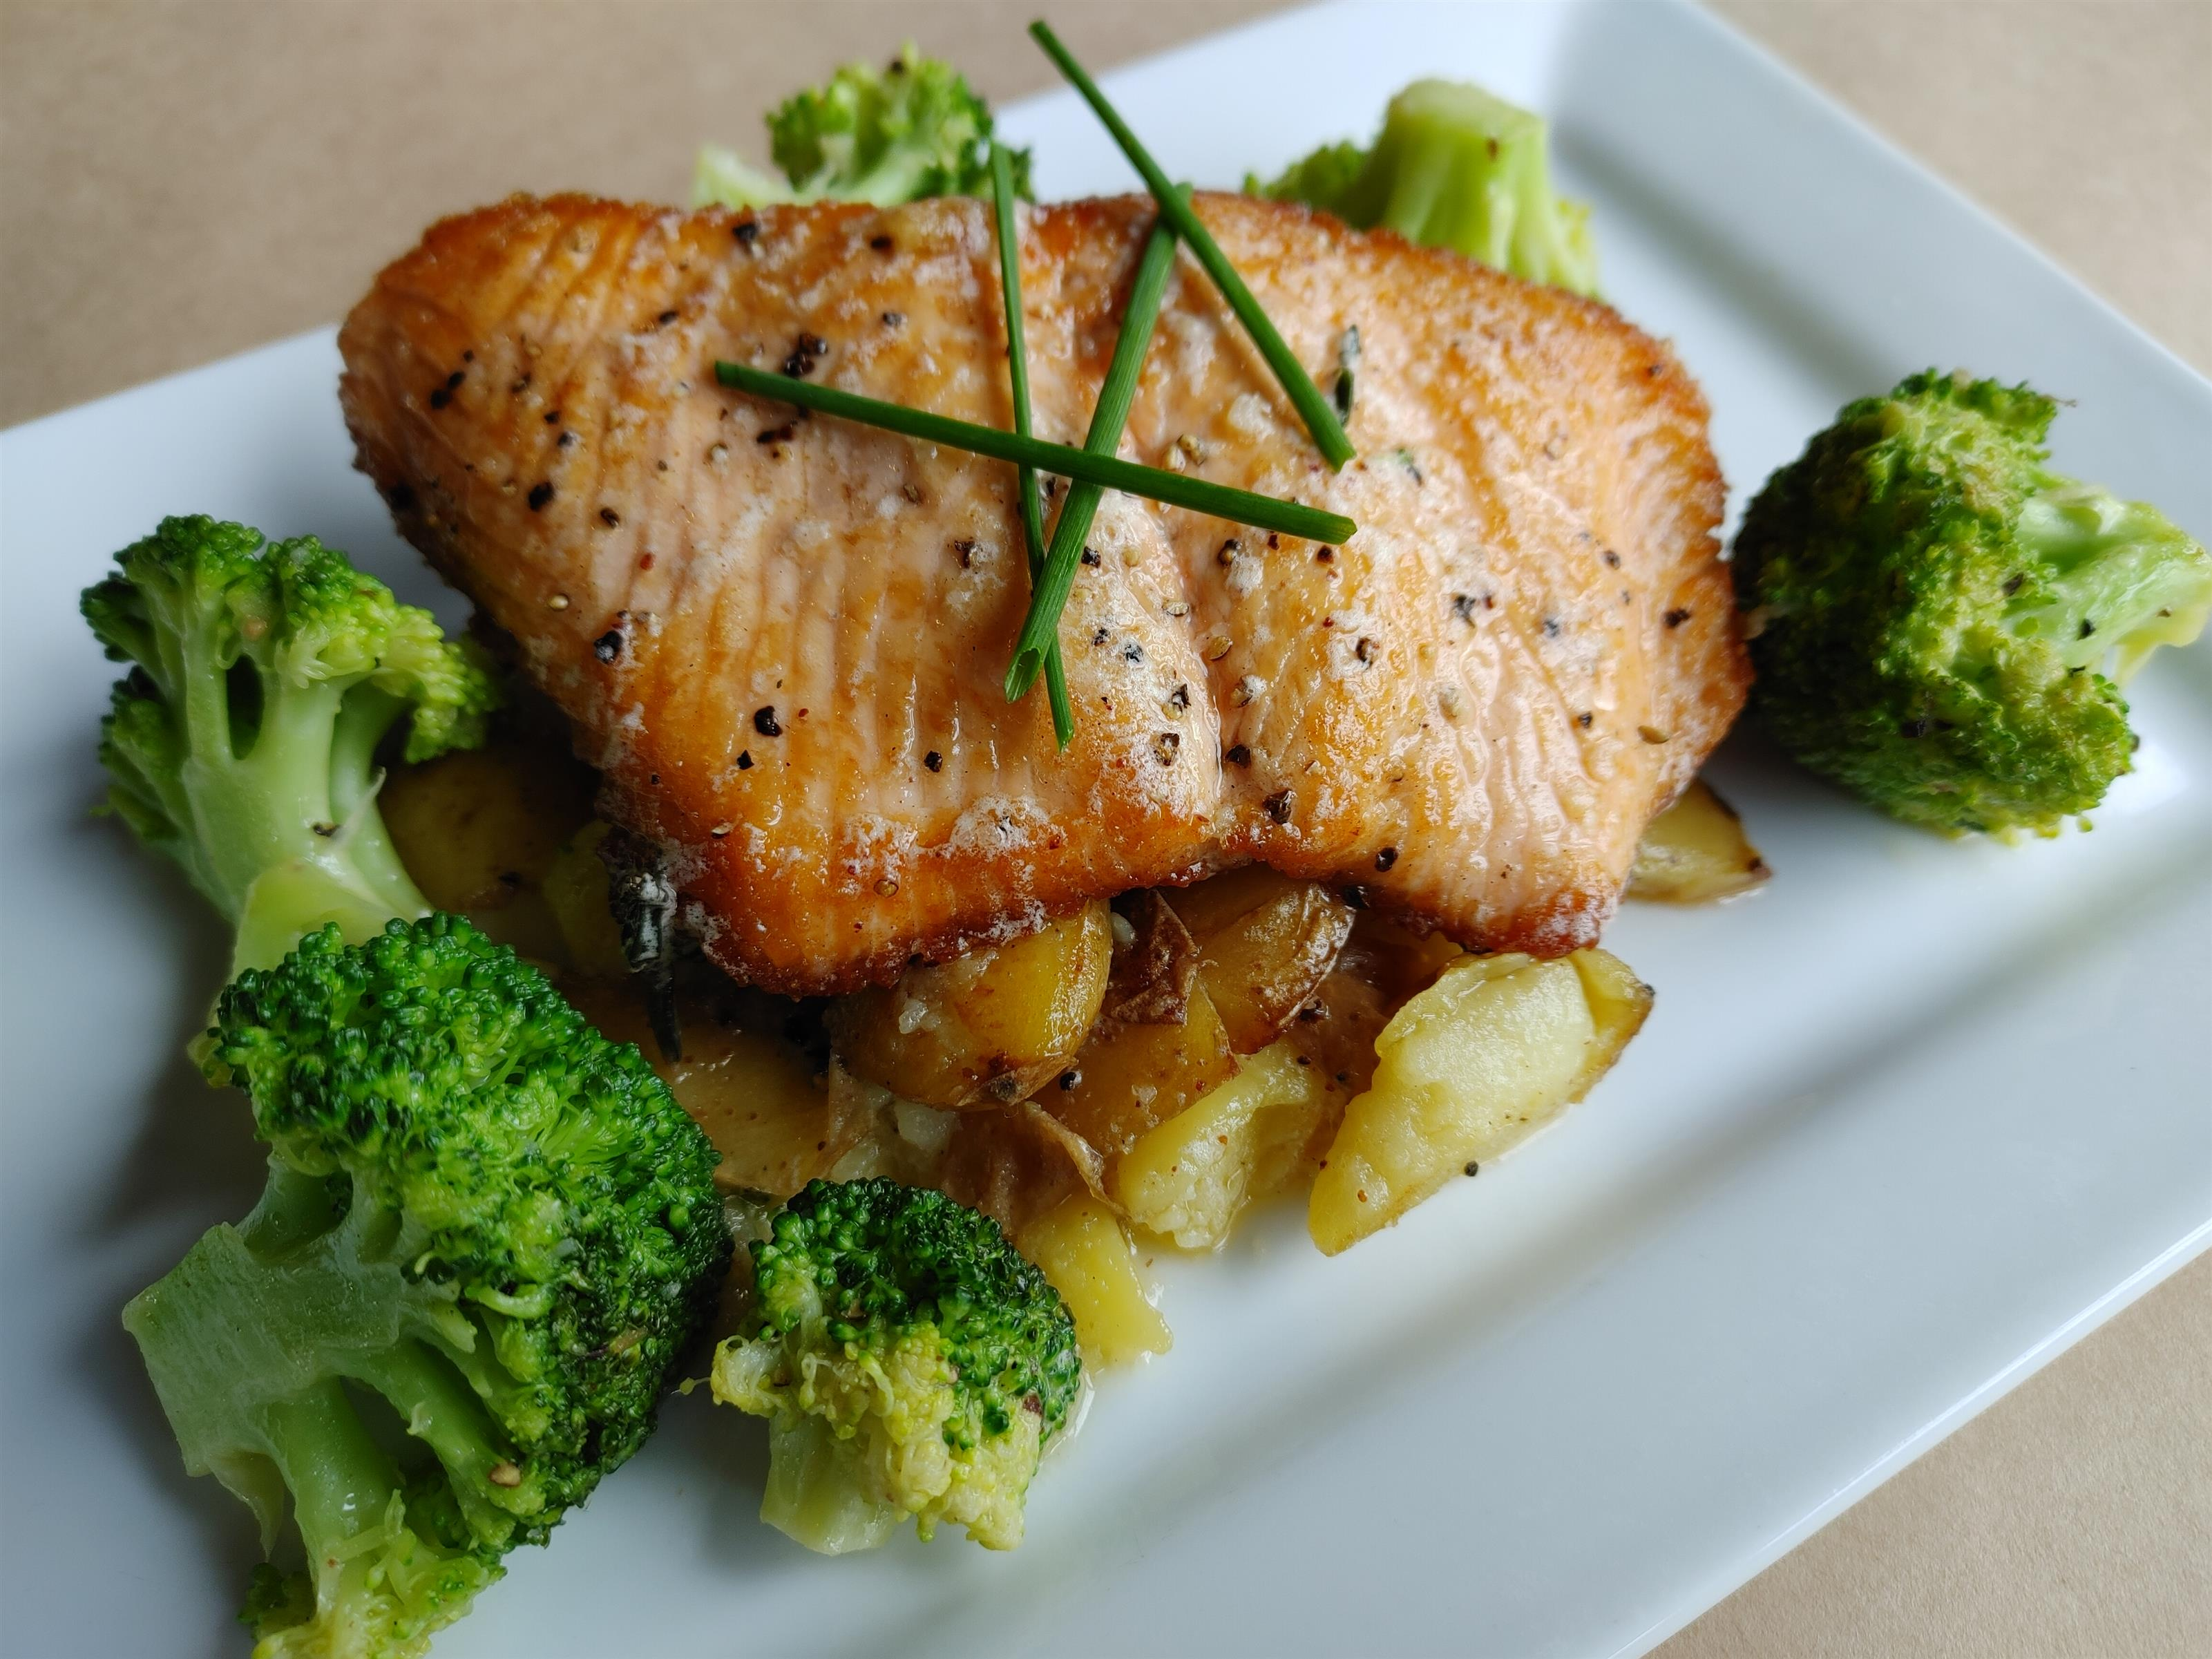 pan seared salmon with smashed fingerling potatoes & broccoli with a lemon thyme butter